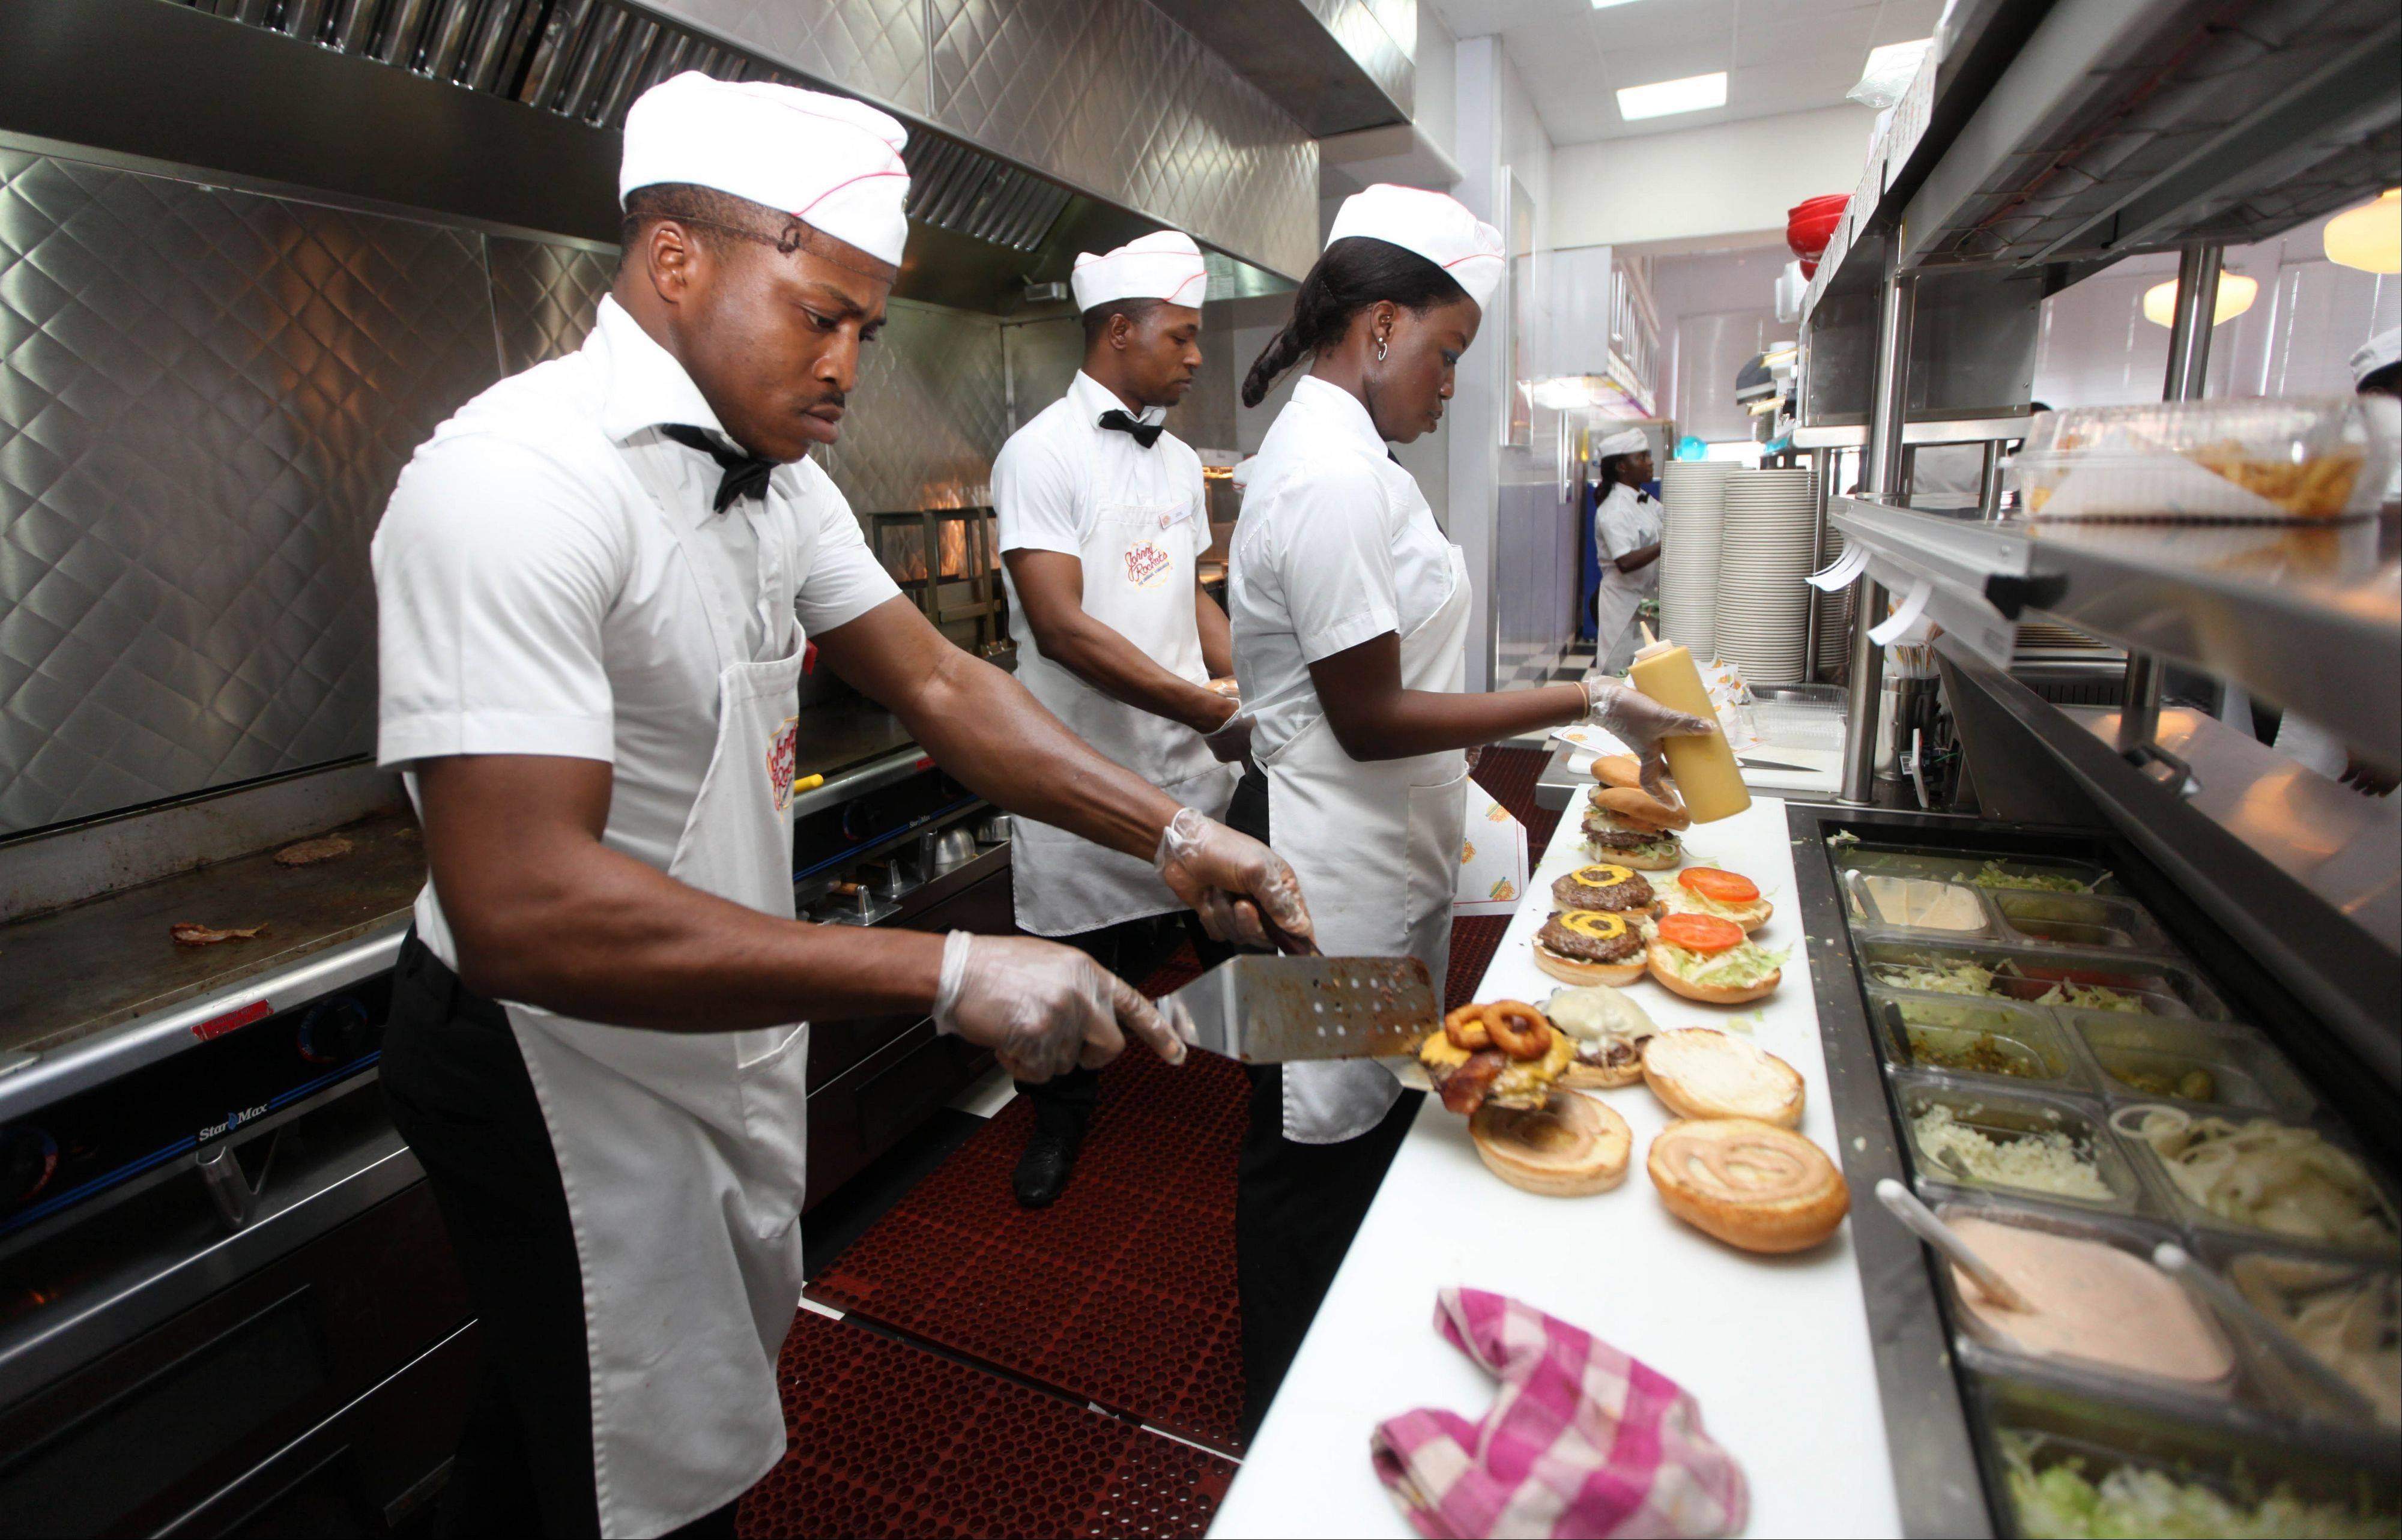 Workers prepare hamburgers at Johnny Rockets restaurant in Lagos, Nigeria.